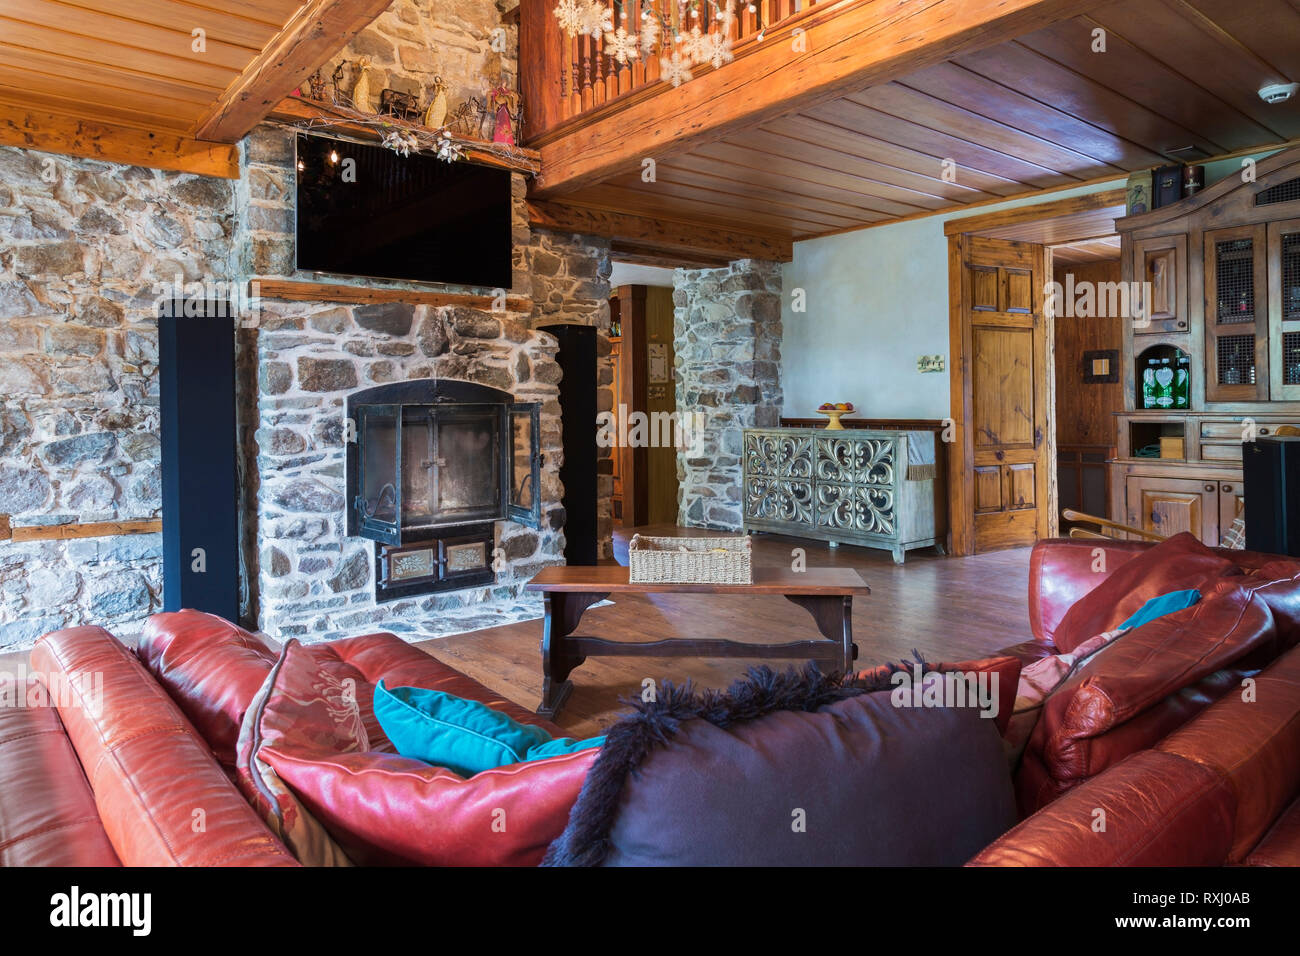 reddish burgundy leather sofas with wooden bench style coffee tablereddish burgundy leather sofas with wooden bench style coffee table in living room with natural stone fireplace with wrought iron doors inside an old